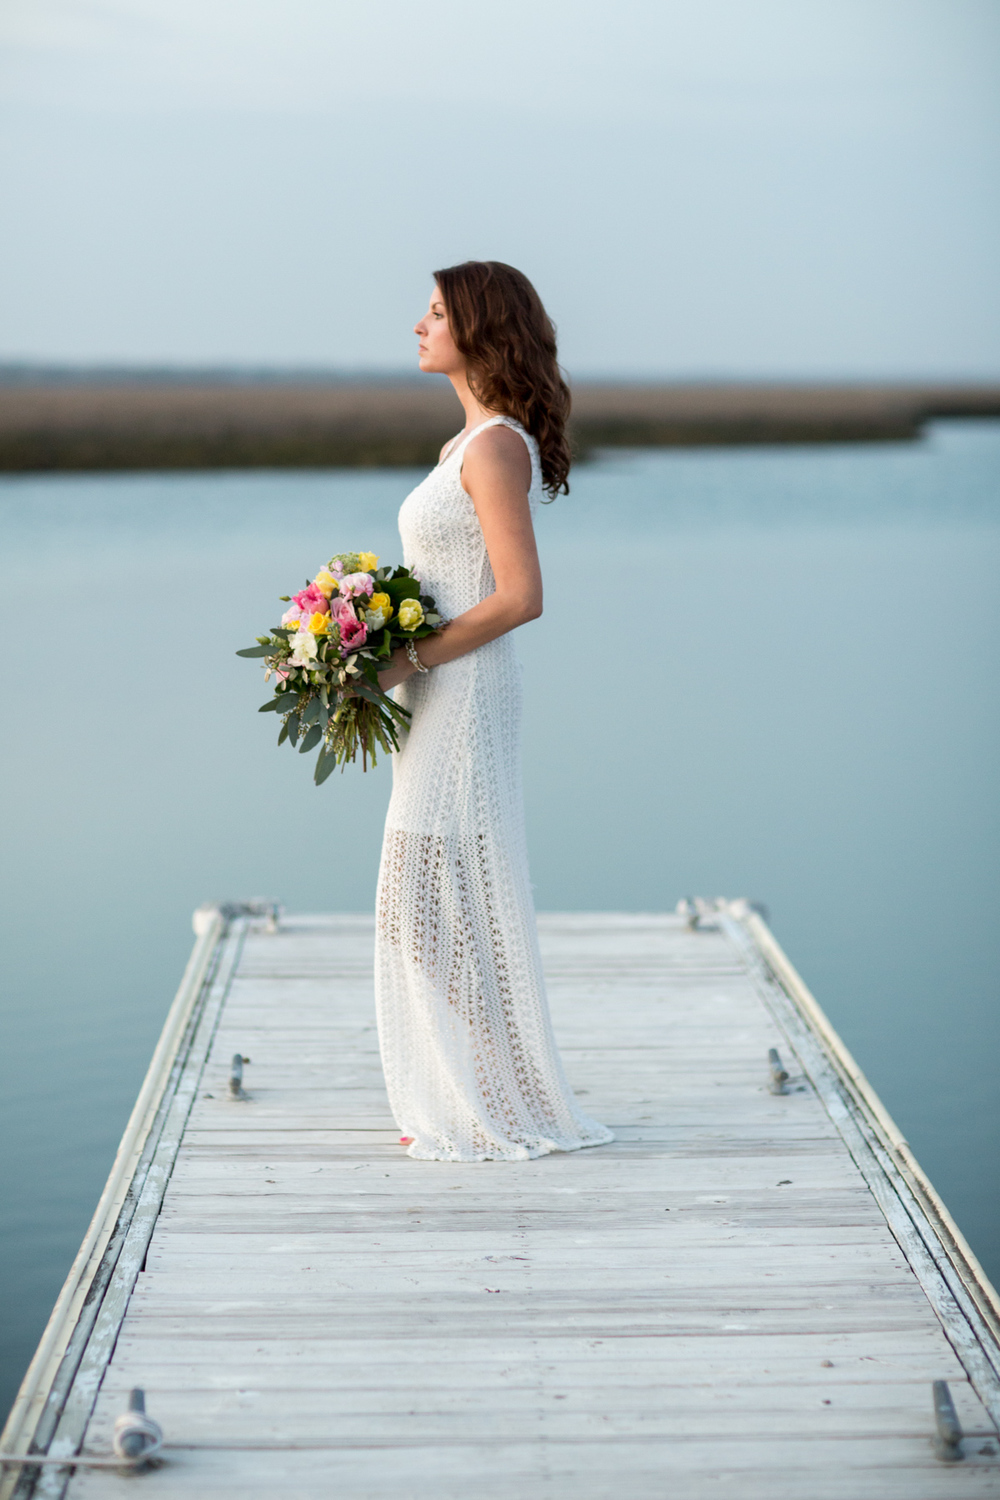 Figure eight island wedding 03.jpg